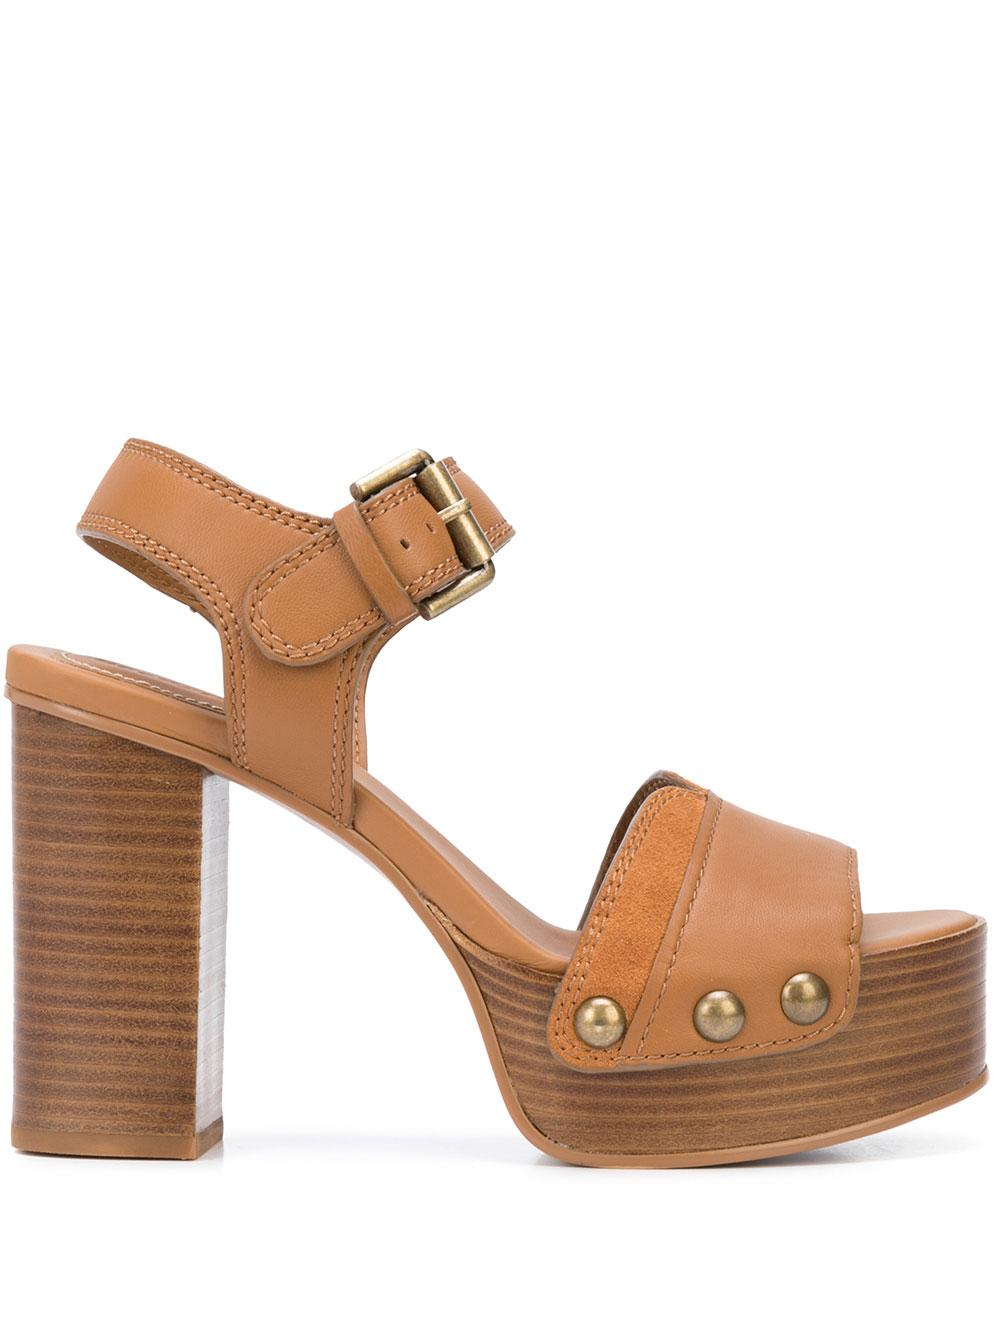 Leather Platform Block High Heel Sandal